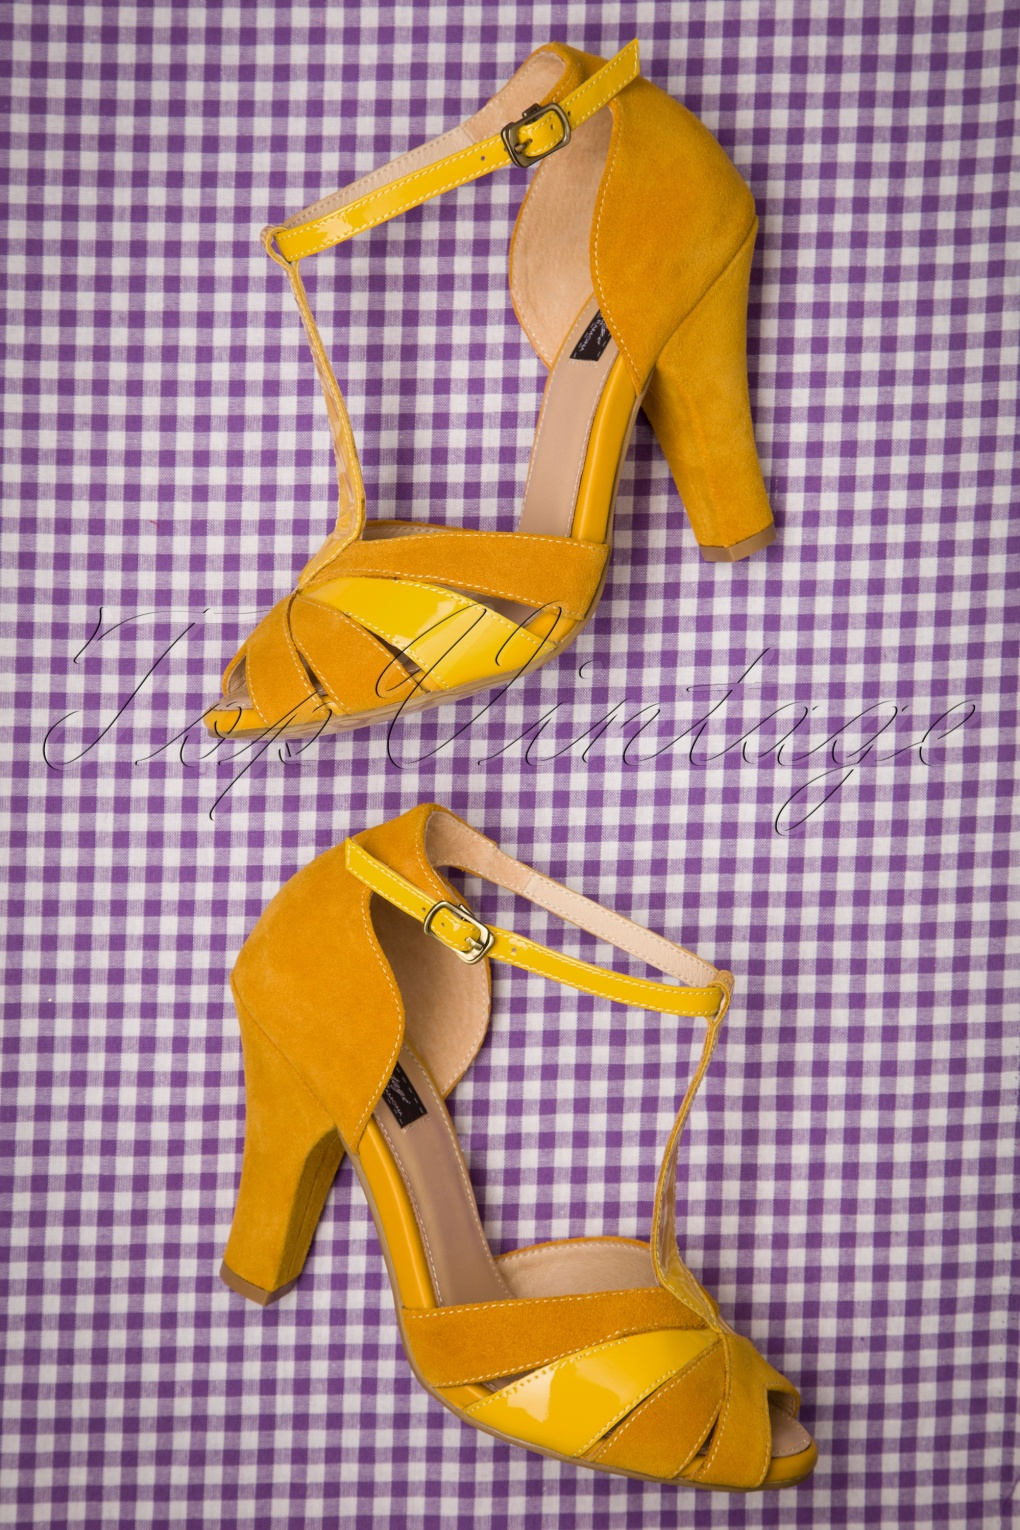 1950s Style Shoes | Heels, Flats, Saddle Shoes 50s June Luce Del Sole Peeptoe Pumps in Yellow £108.11 AT vintagedancer.com